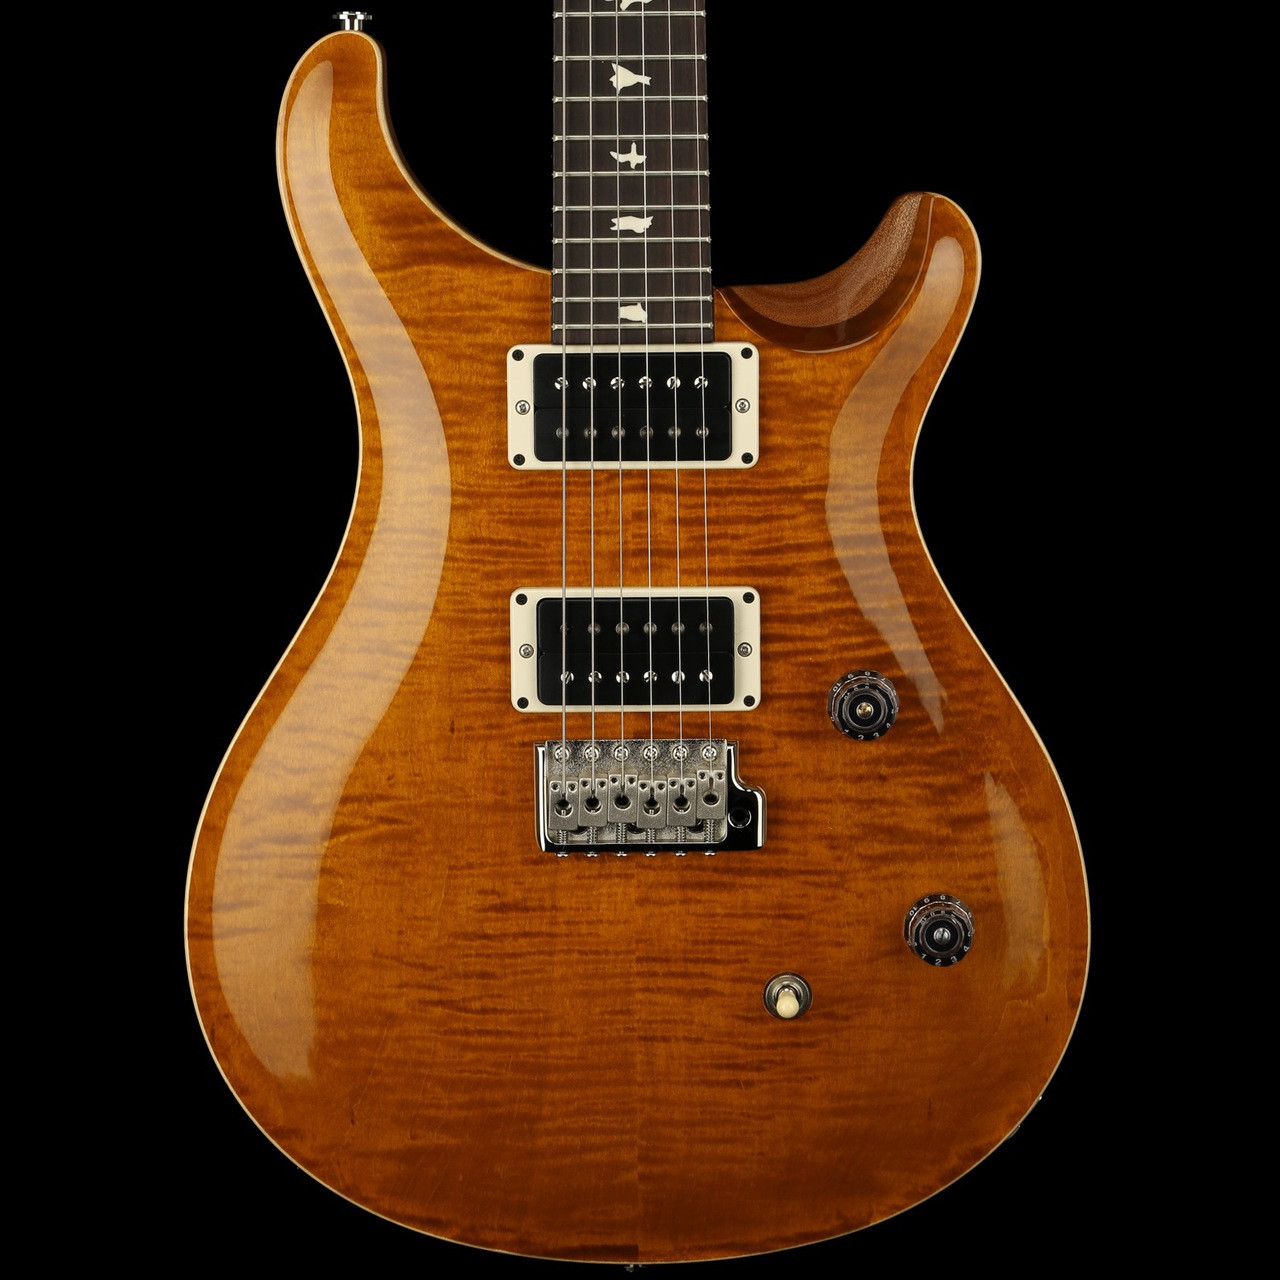 prs ce24 classic electric in amber 85 15 pickups pattern thin neck with gigbag wildwire guitars. Black Bedroom Furniture Sets. Home Design Ideas